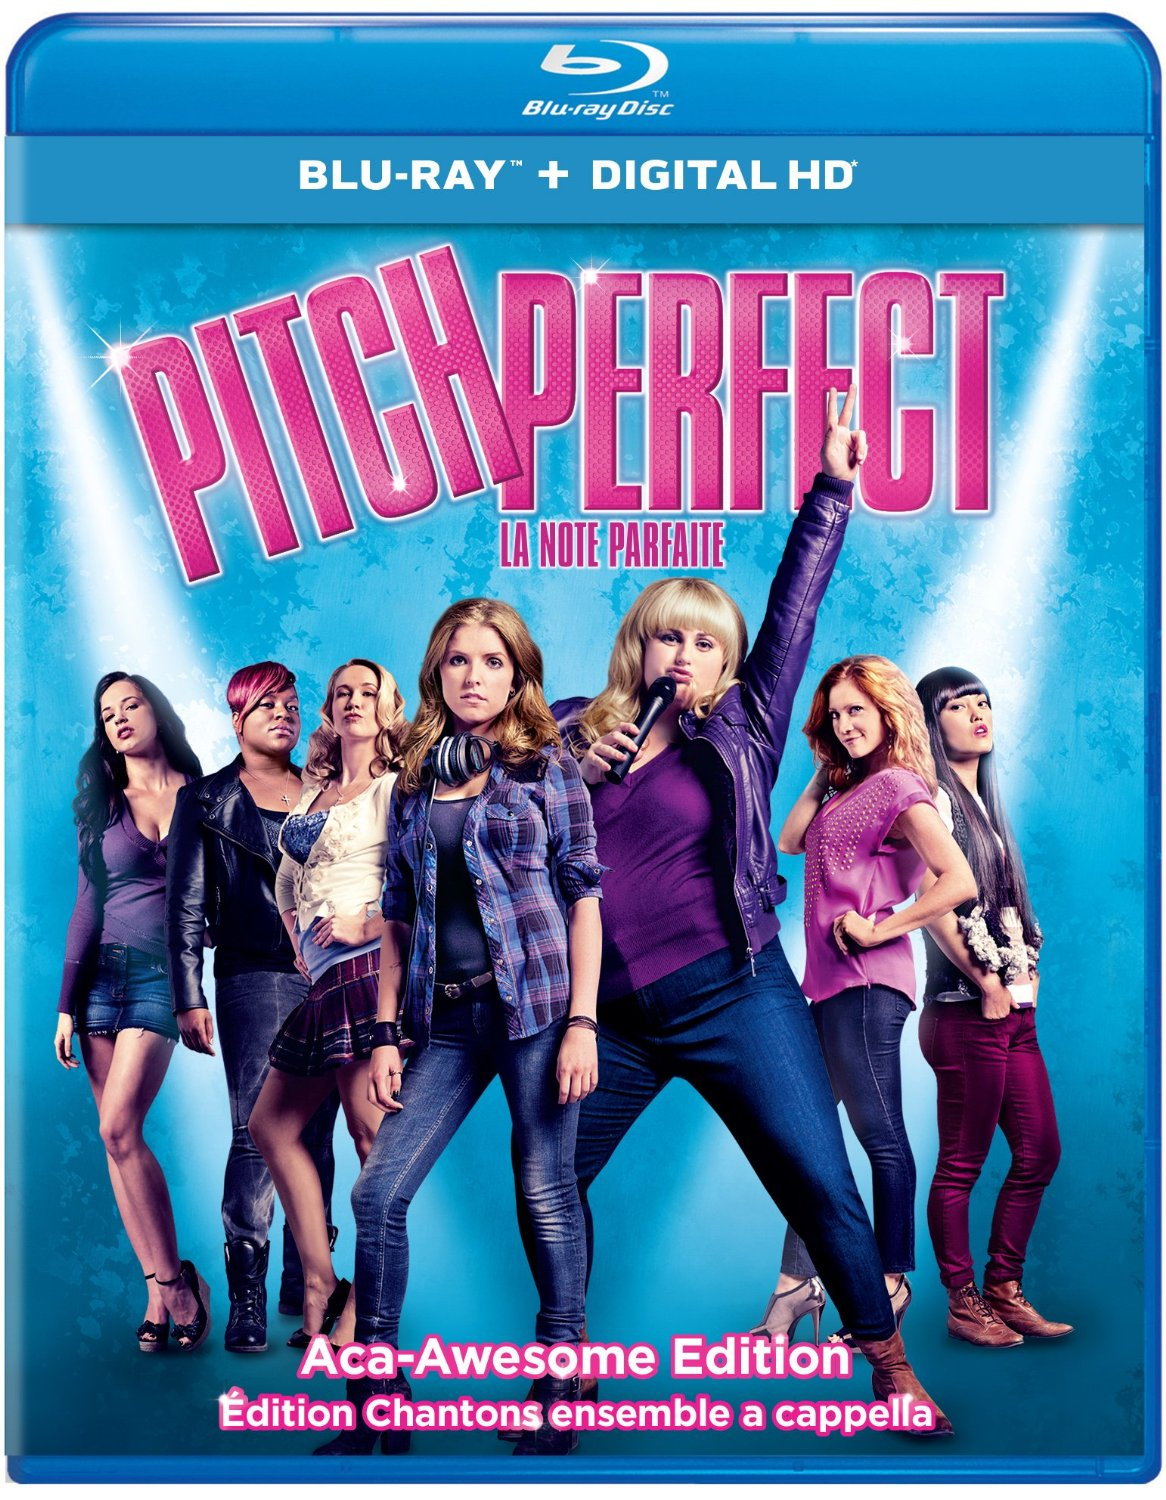 Pitch Perfect: Sing-Along Aca-Awesome Edition – Blu-ray